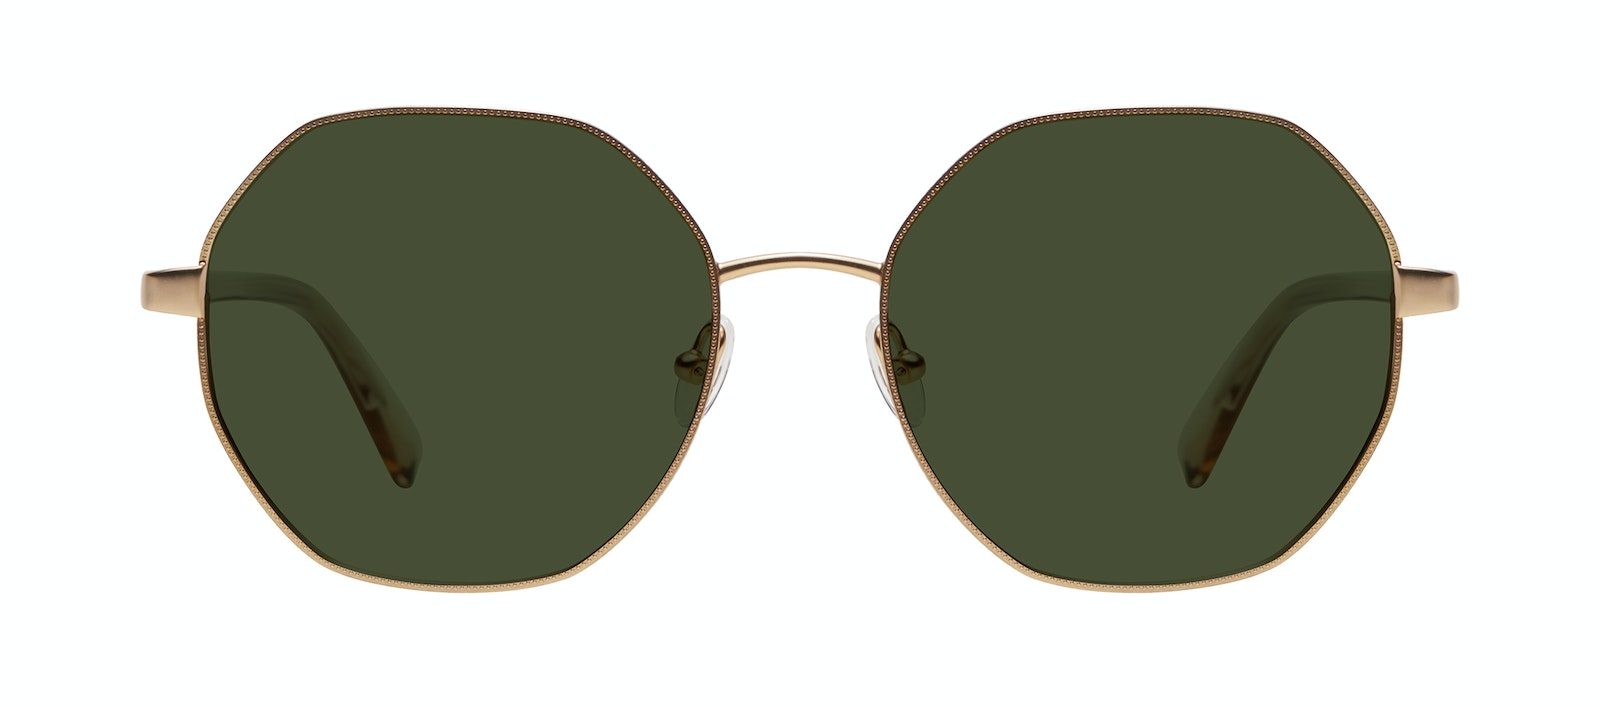 Affordable Fashion Glasses Round Sunglasses Women Fantasy Matte Gold Front